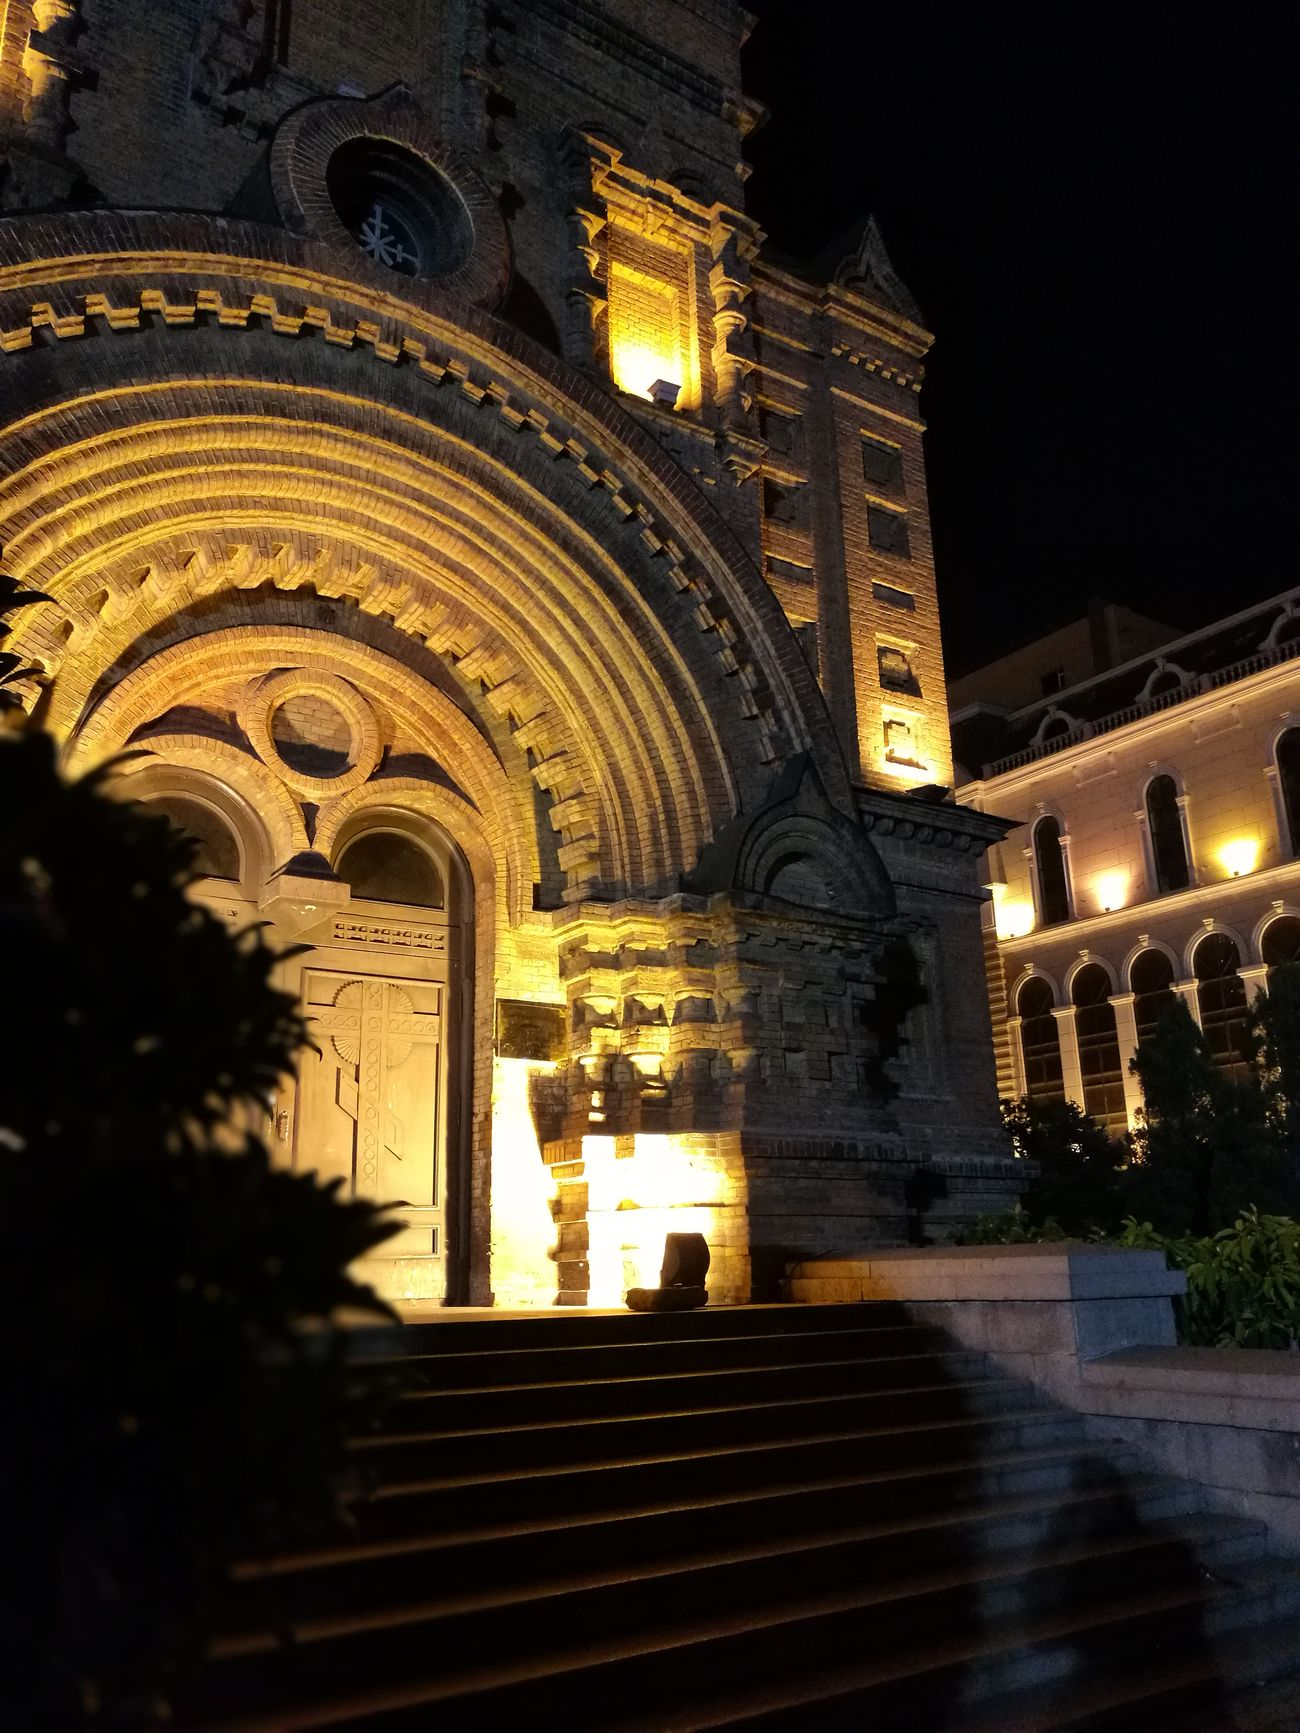 Arch Architecture Building Exterior Church Entrance Harbin Low Angle View Night Religion Saint Sofia Church